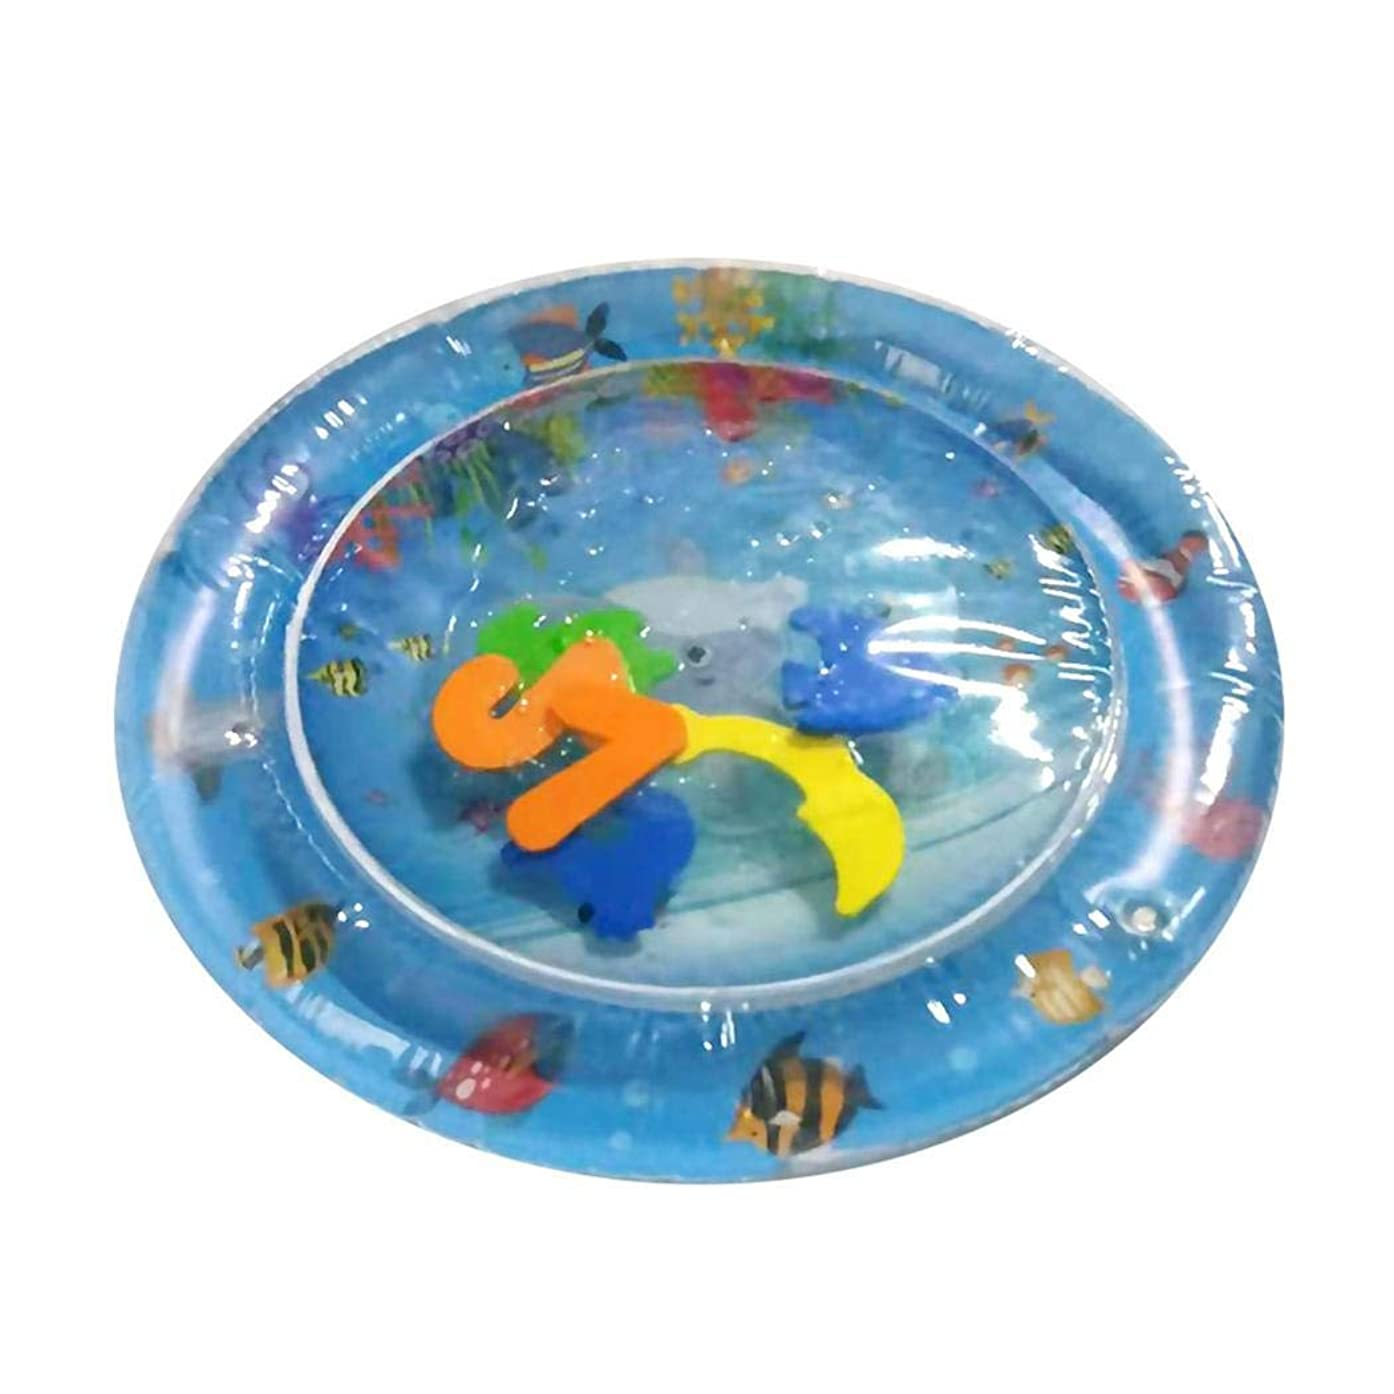 Inflatable Baby Water Mat, Infants Toddlers is The Perfect Fun Time Play Activity Center Your Baby's Stimulation Growth